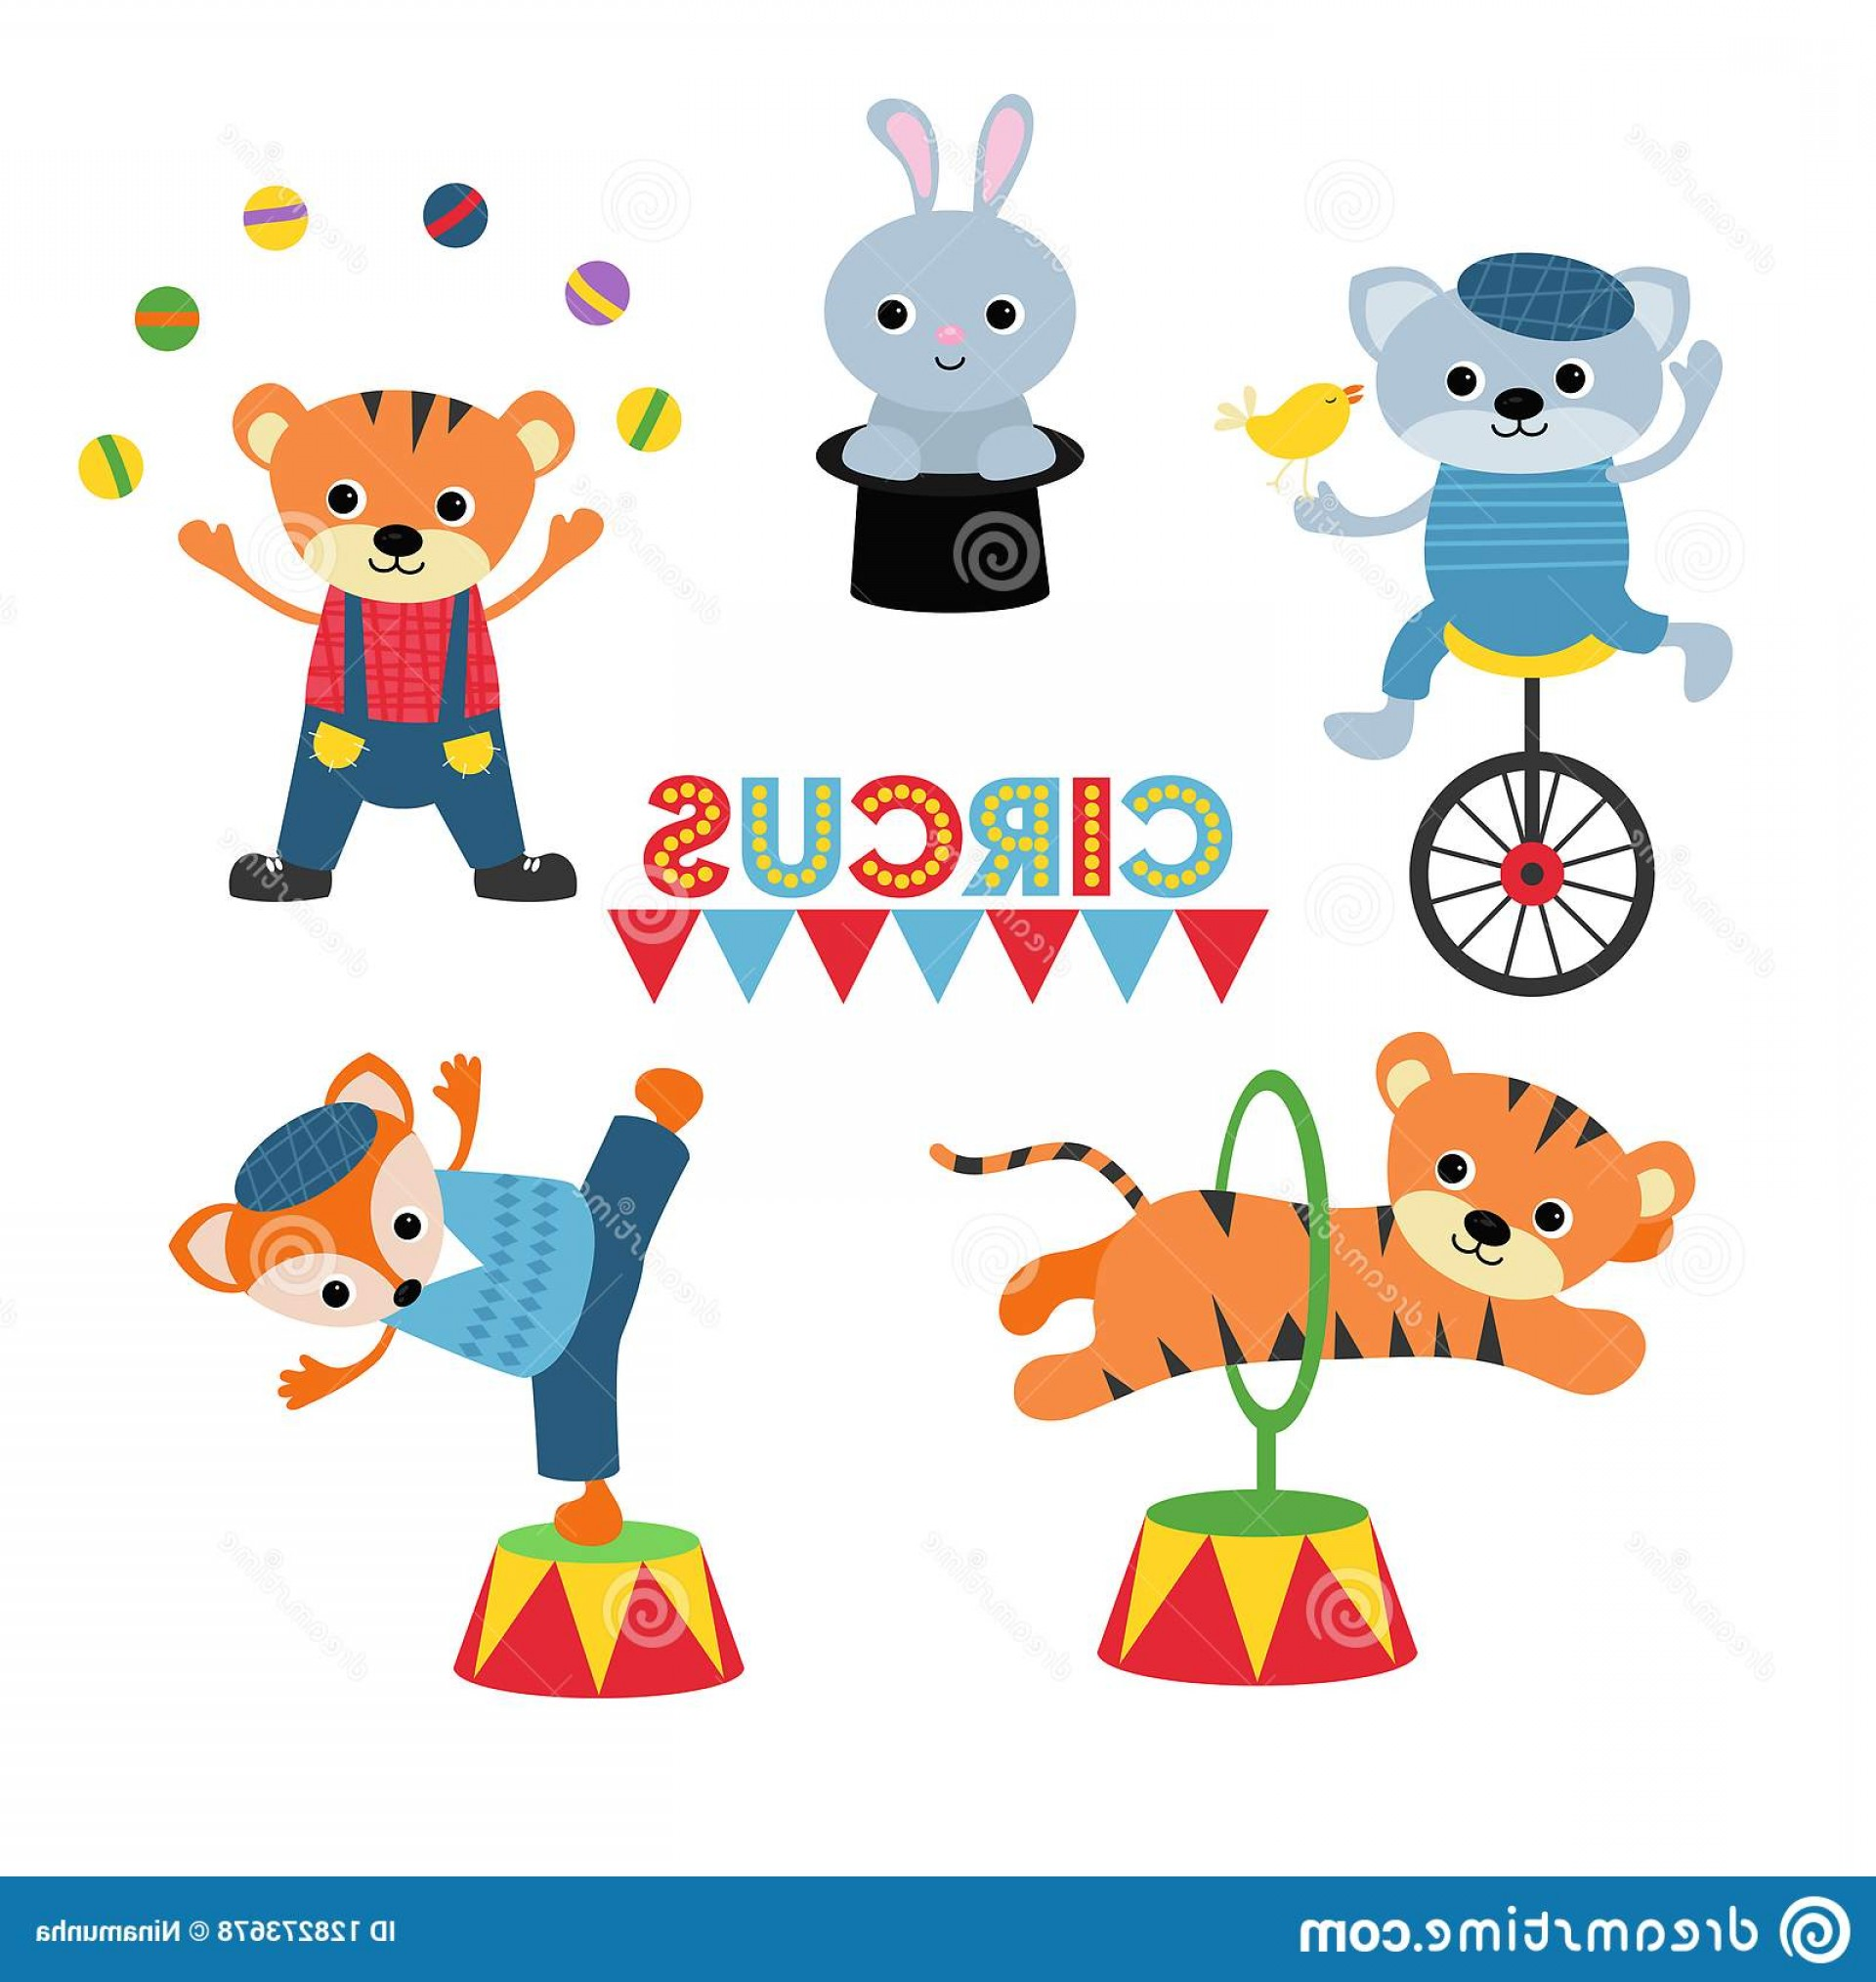 Circus Animals Vector Graphic: Circus Theme Set Animals Artists Different Actions Includes Cat Tiger Rabbit Hare Fox Image